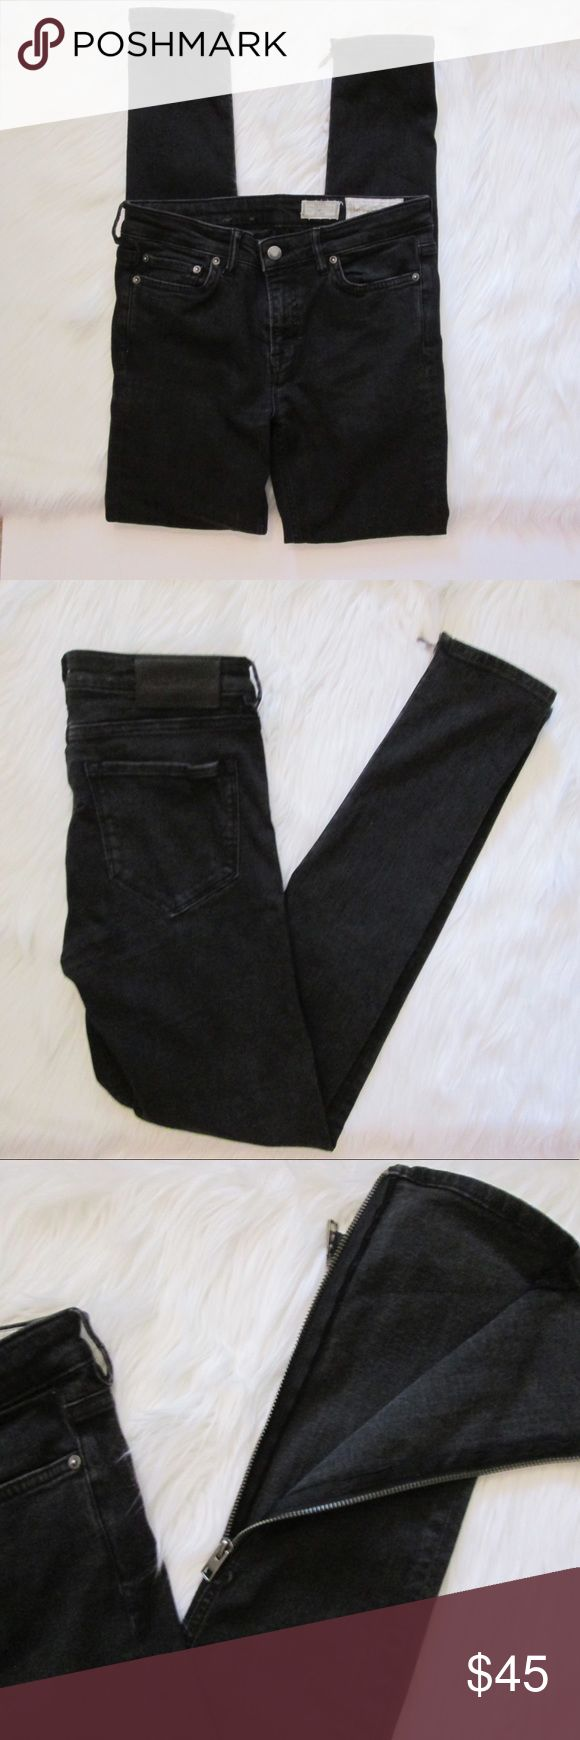 ALLSAINTS rail low rise skinny fit black zipper These skinny ankle zip jeans are on trend for Fall! Great gently used condition! Only flaw is small hole under one of the belt loops— pictured above. Not notable when worn.   Measurements: Waist 29 Inseam 30 Length 39 All Saints Jeans Skinny